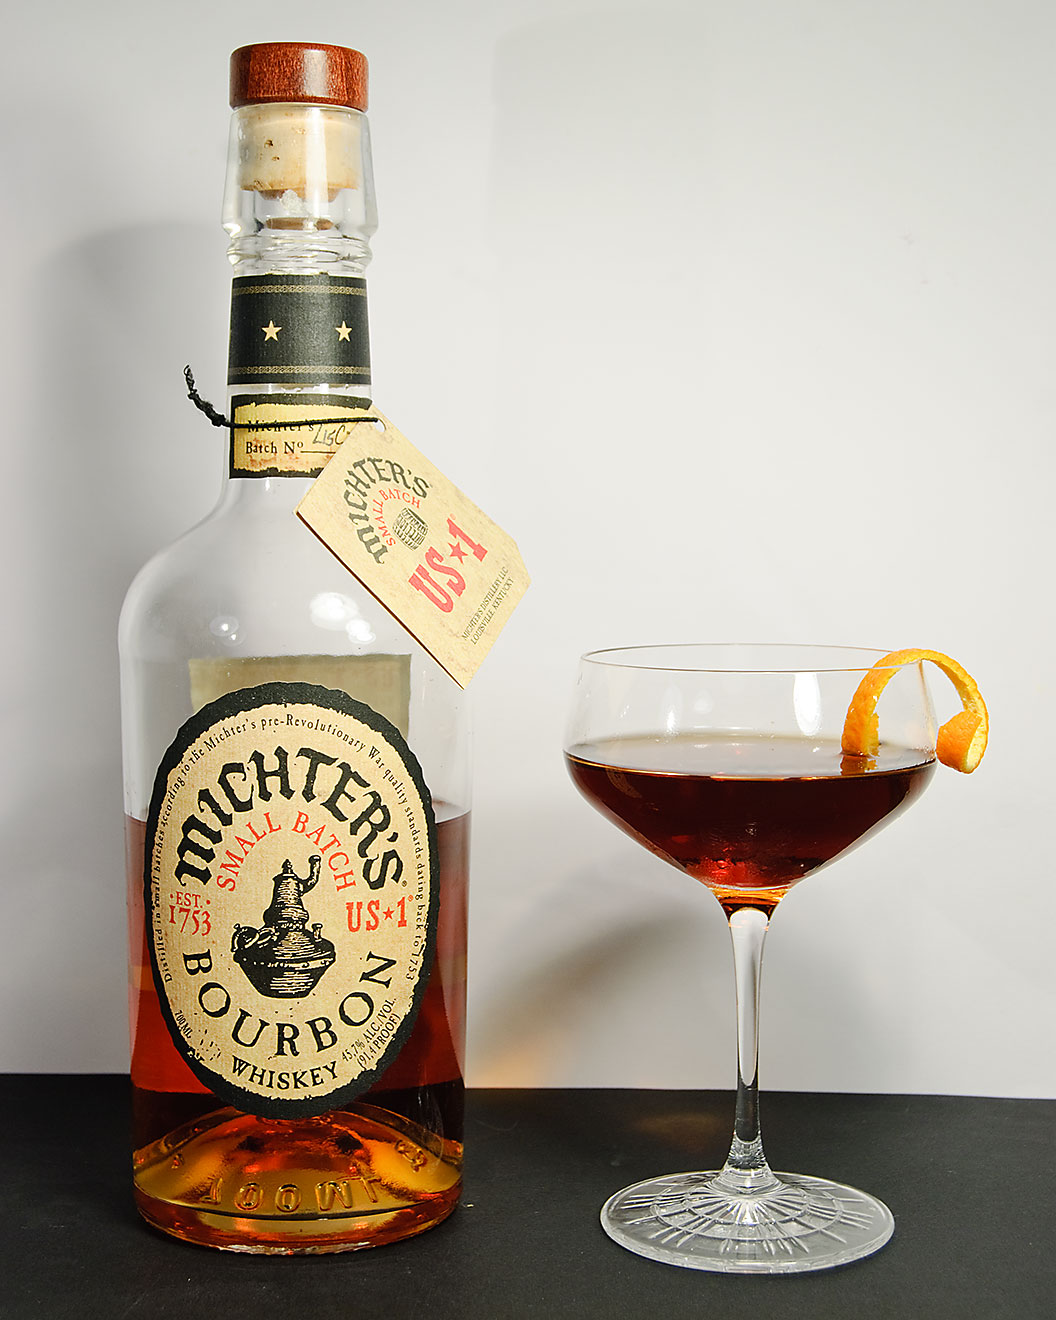 Michter's US *1 Small Batch Bourbon Whiskey in einem Revolver Cocktail mit Kaffeelikör und Orange Bitters.